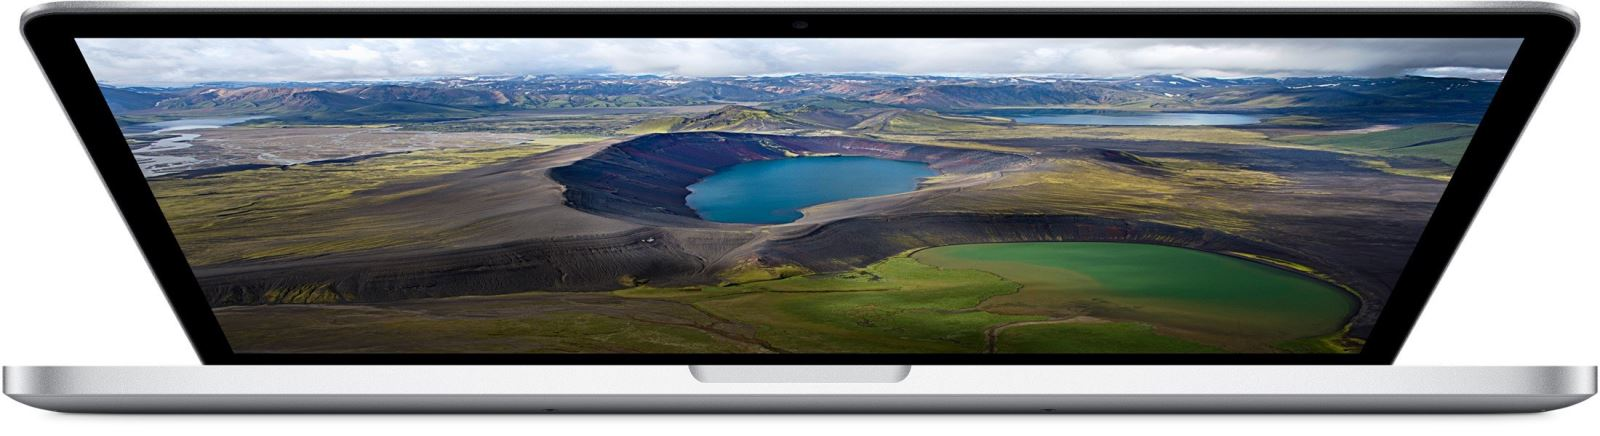 macbook pro retina 2014 man hinh